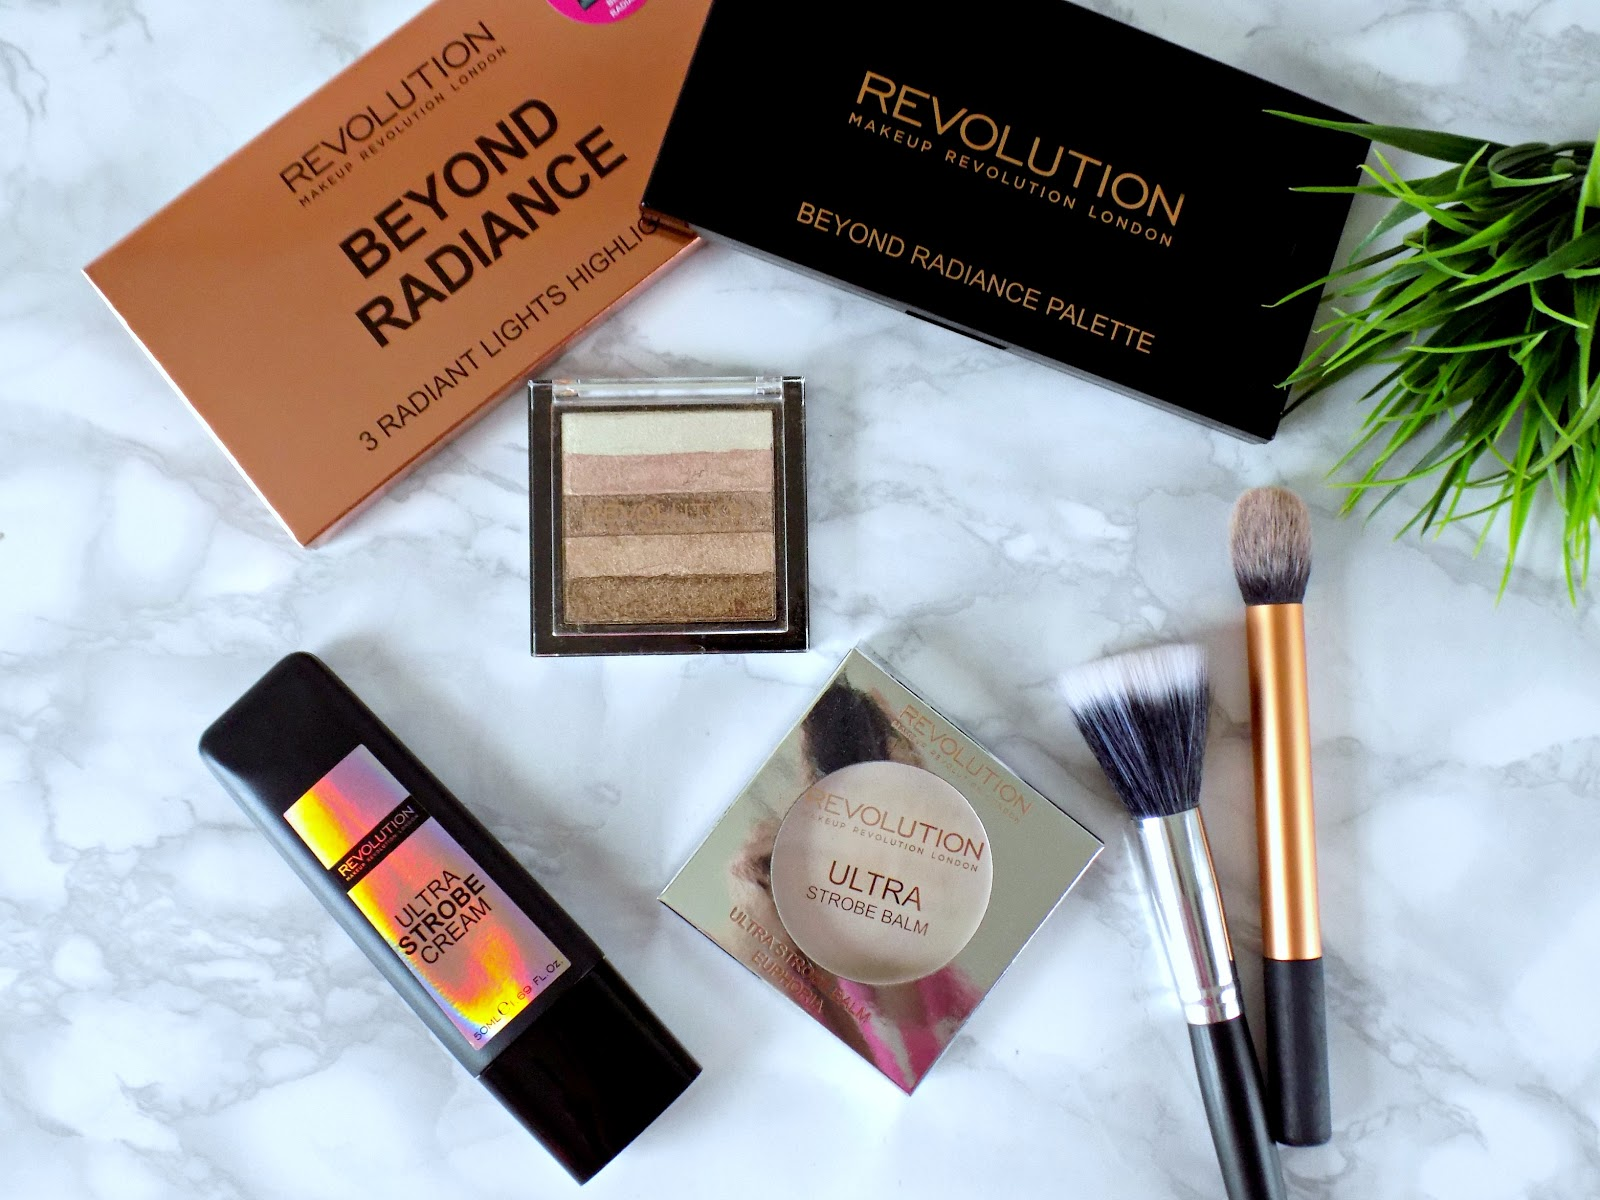 New products from Makeup Revolution